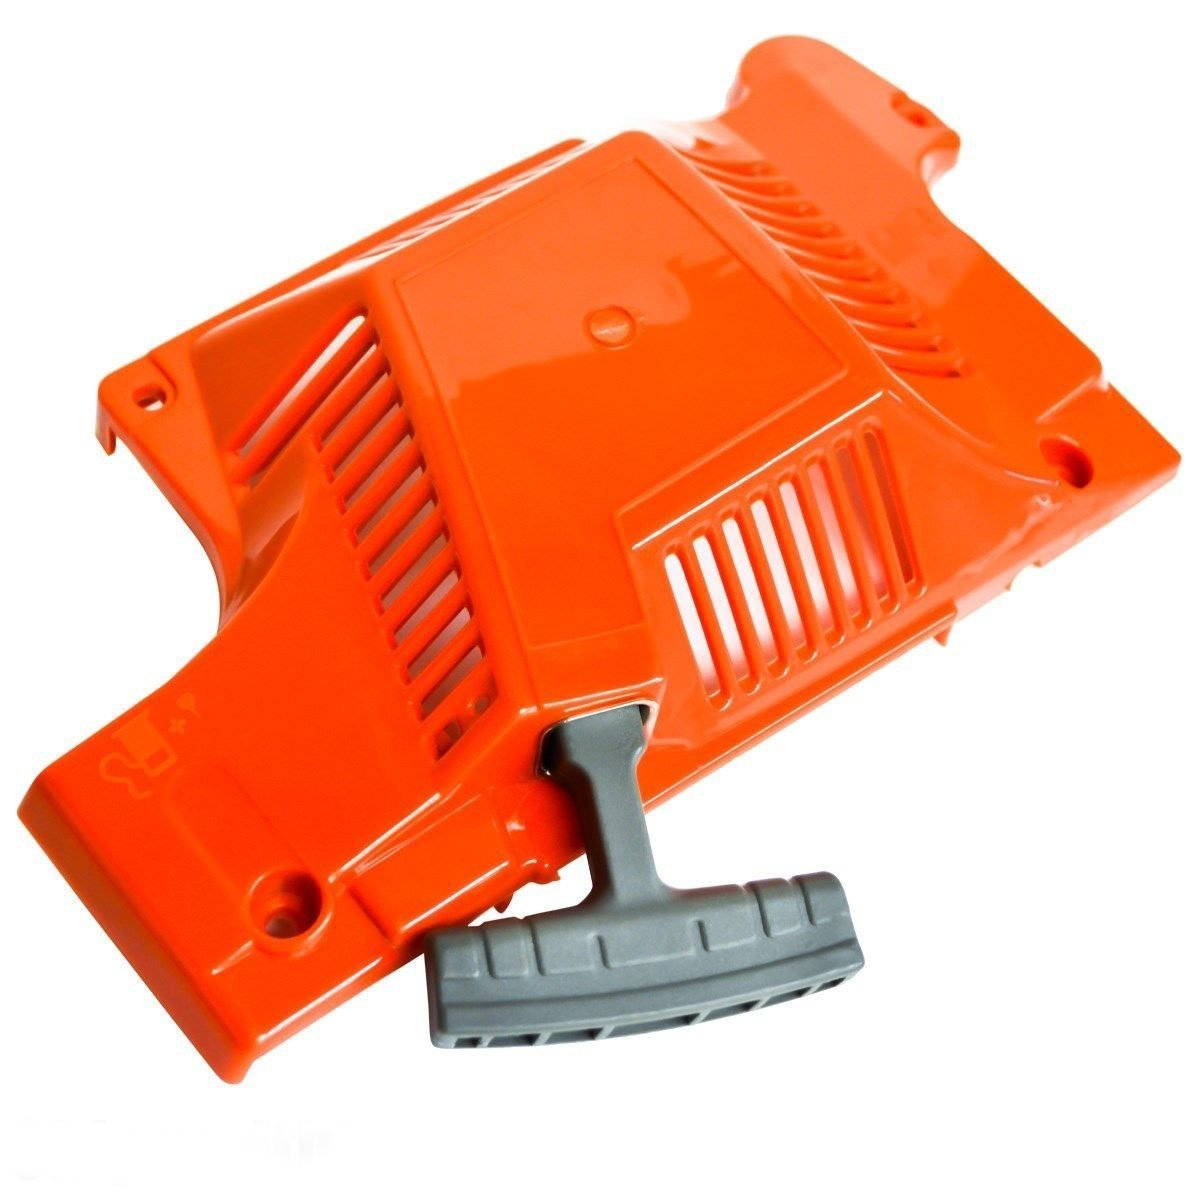 Amazon.com : Outdoors & Spares Replace Recoil Starter Assembly 503608803  for Husqvarna 50 51 55 Rancher EPA Chainsaw : Garden & Outdoor